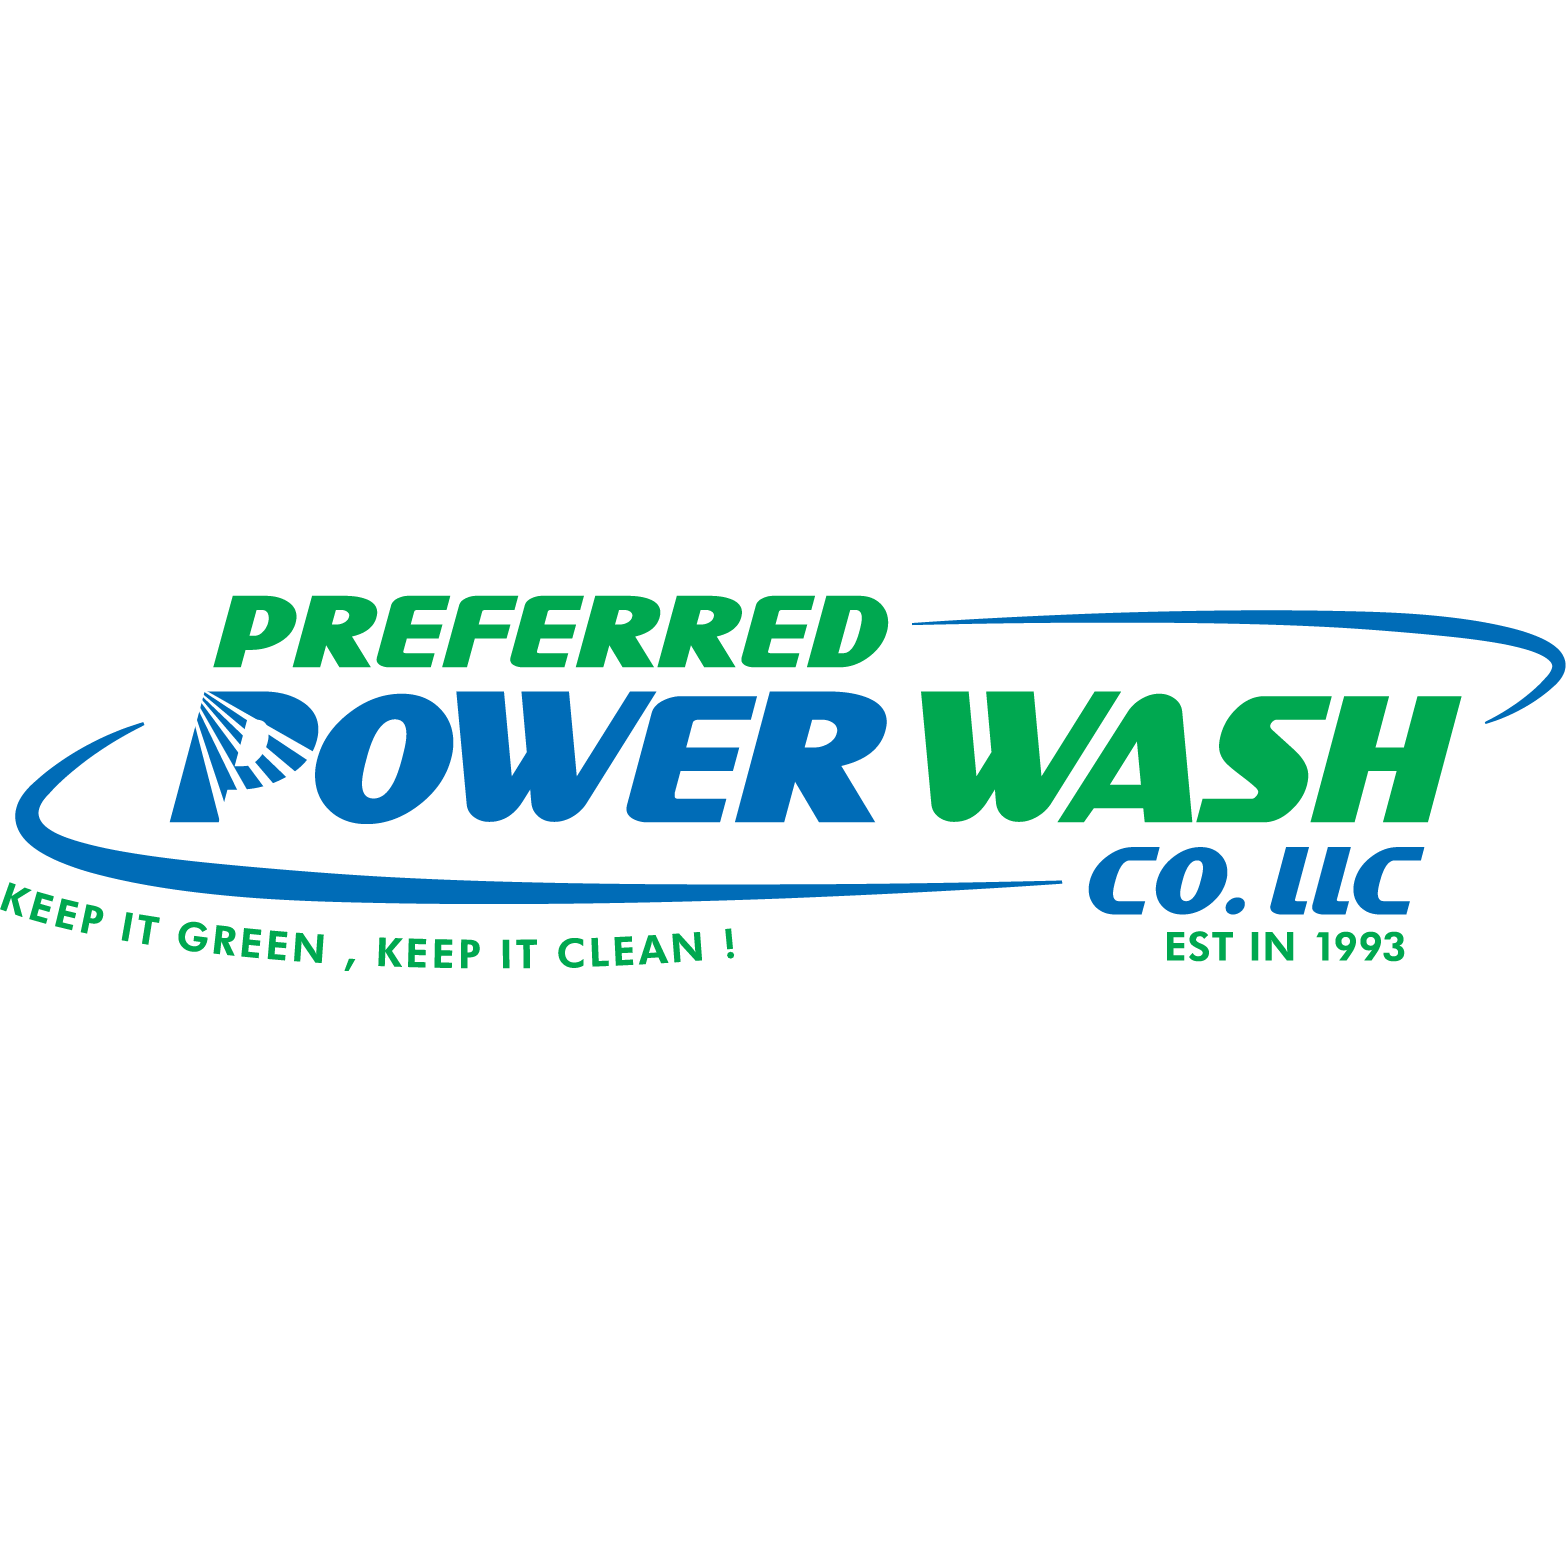 Preferred Power Wash Co. LLC.